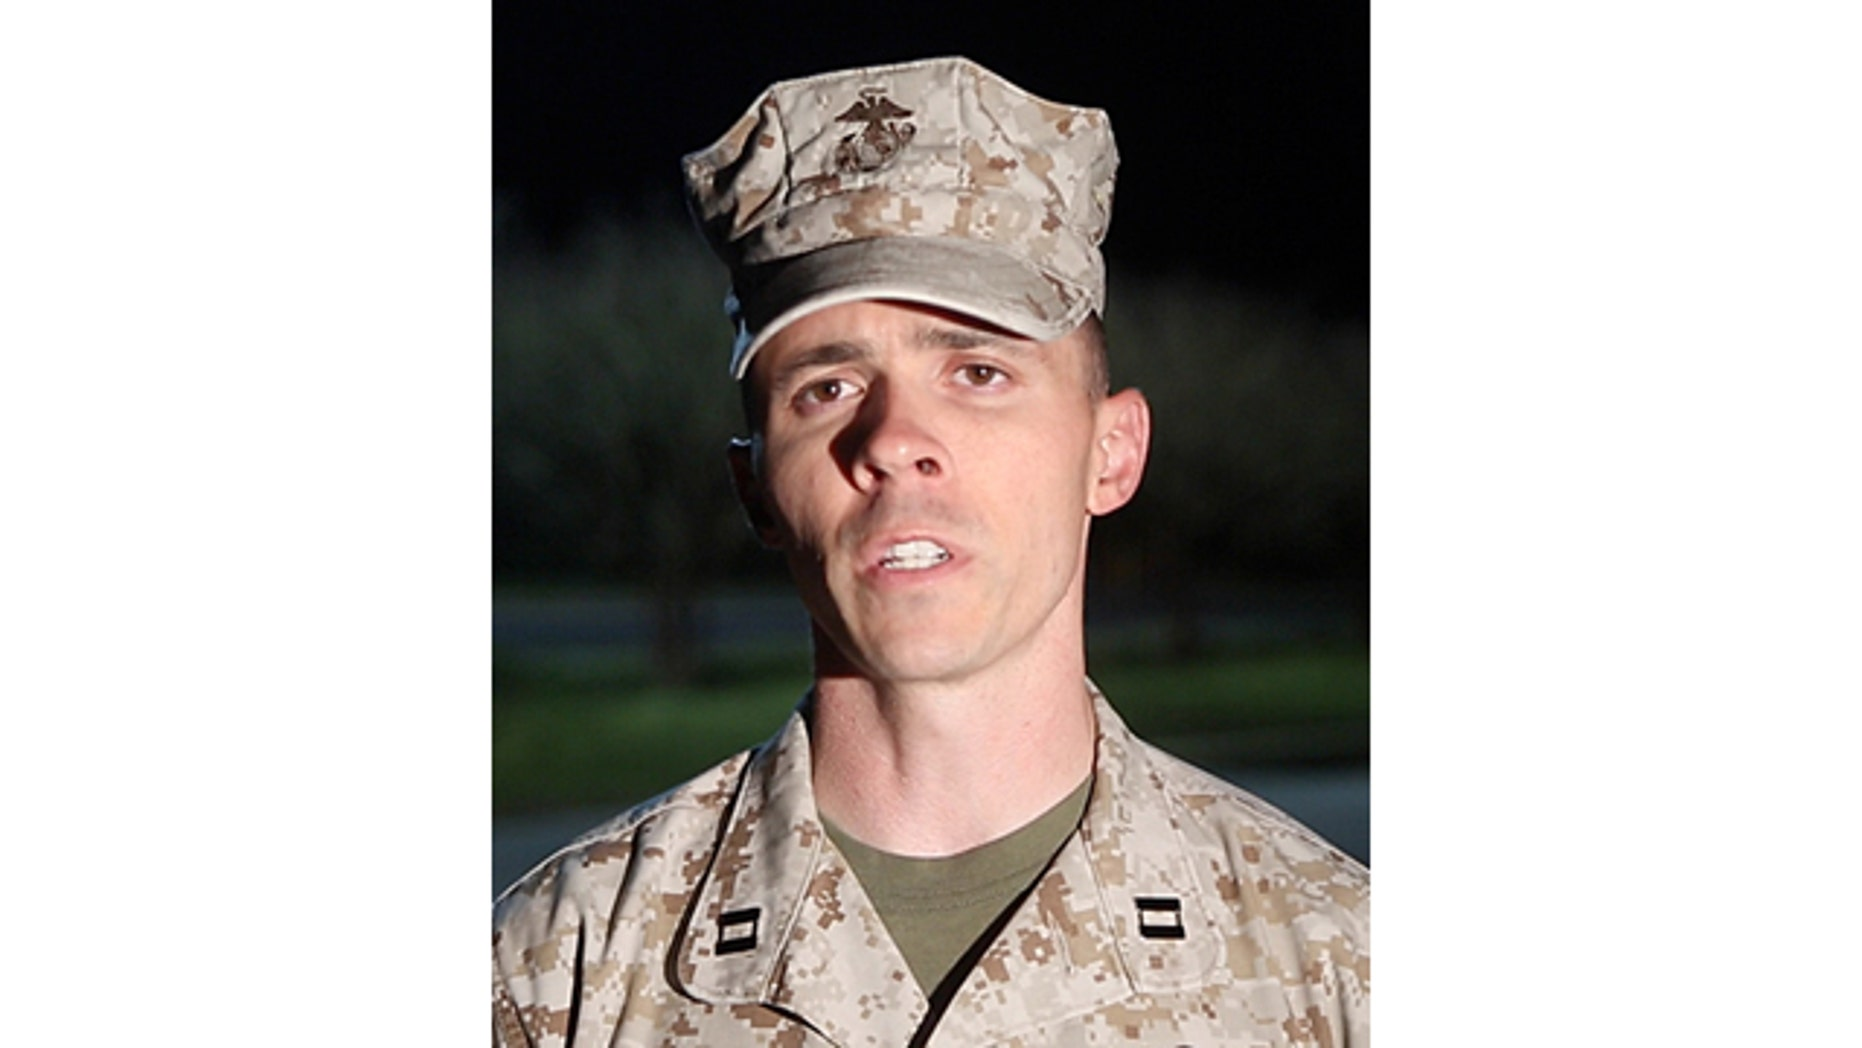 April 8, 2014: Capt. Joshua Smith, public affairs officer for Marine Corps Installations East, Camp Lejeune, Jacksonville, comments on the shooting  at Camp Lejeune. A Marine posted at the main gate of the North Carolina base shot and killed a colleague inside a guard shack, a military spokesman said. (AP Photo/John Althouse/The Daily News)